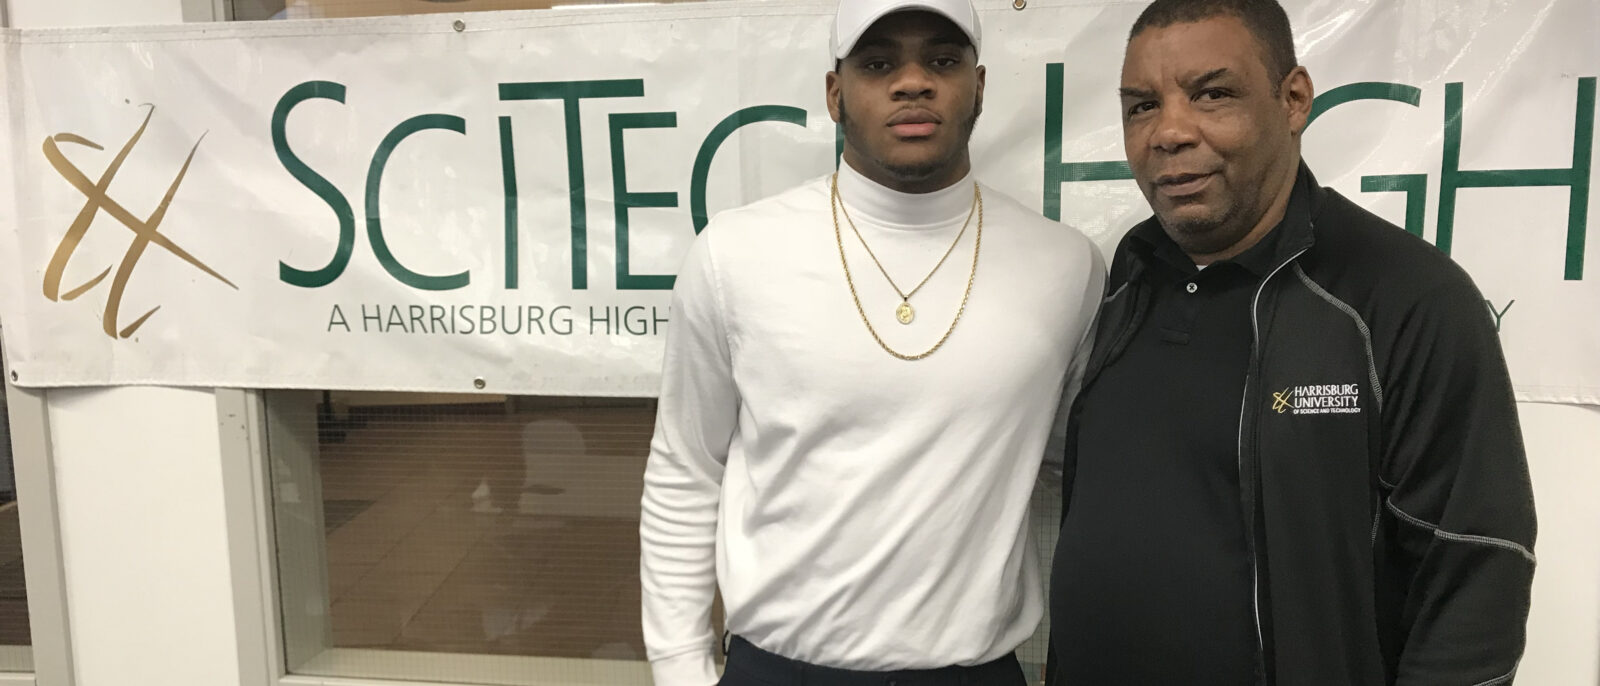 HU congratulates former student Micah Parsons as he heads to the NFL